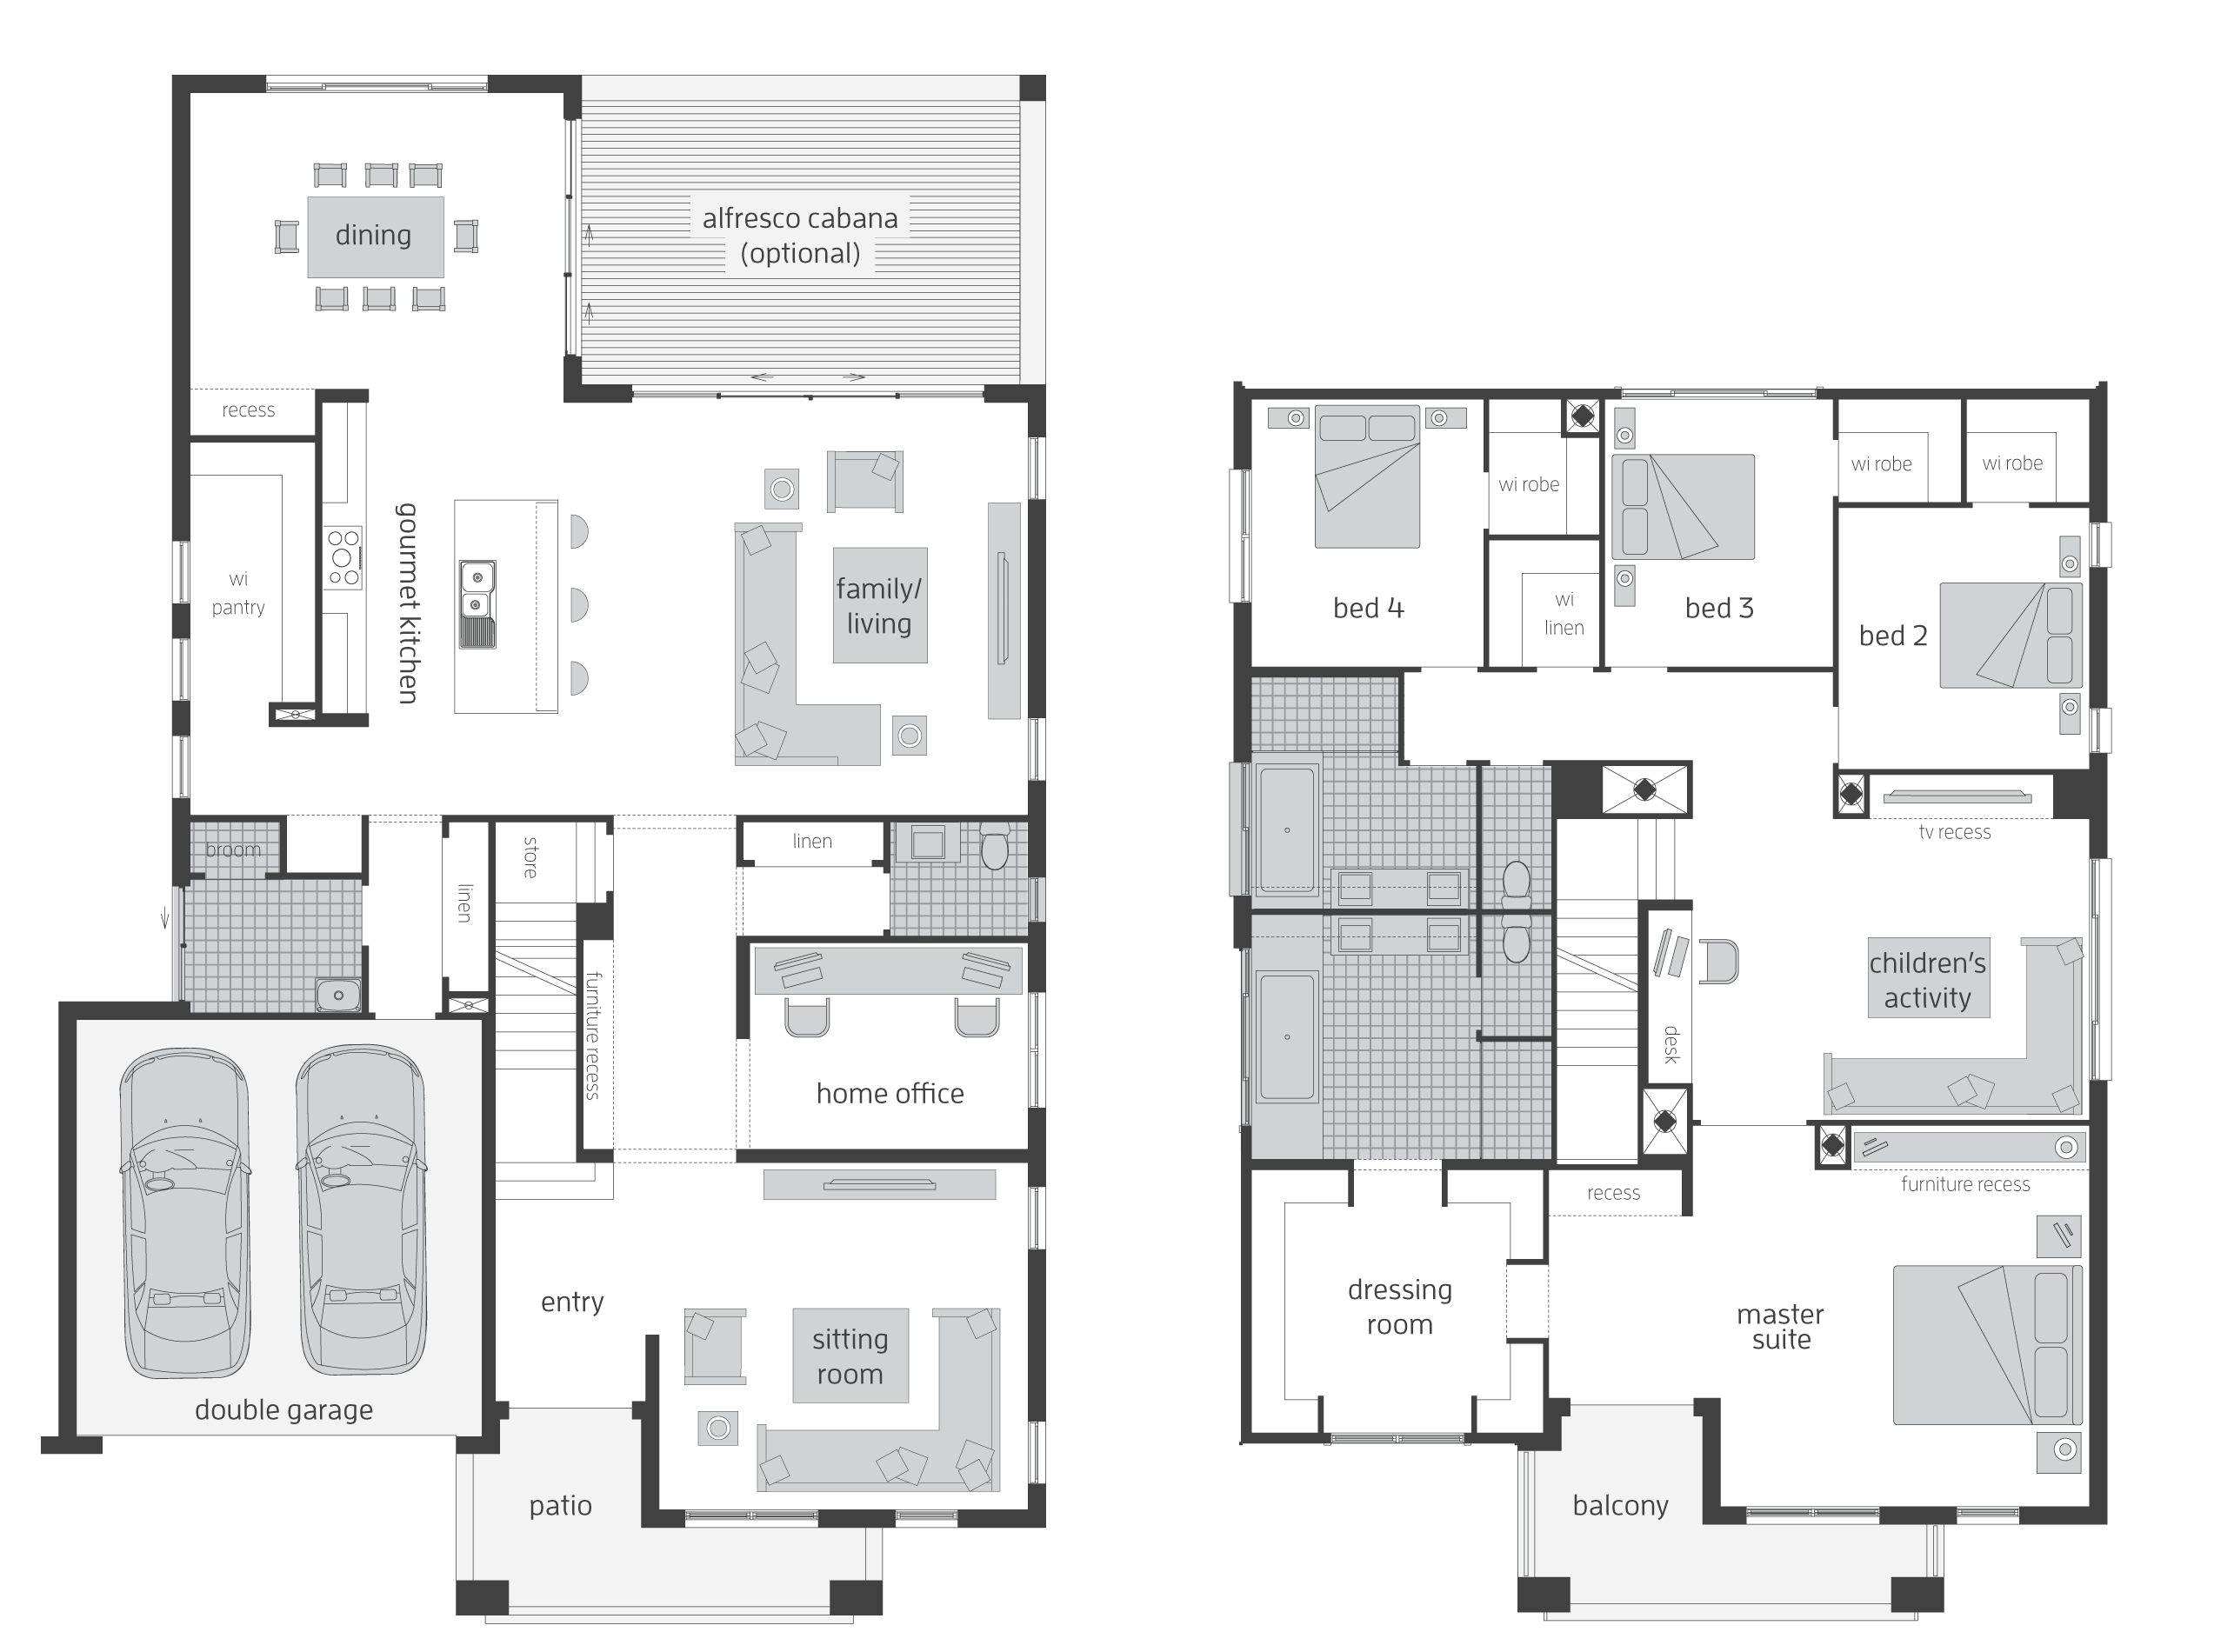 Tallavera 45 Two Storey Home Floor plan. The Tallavera